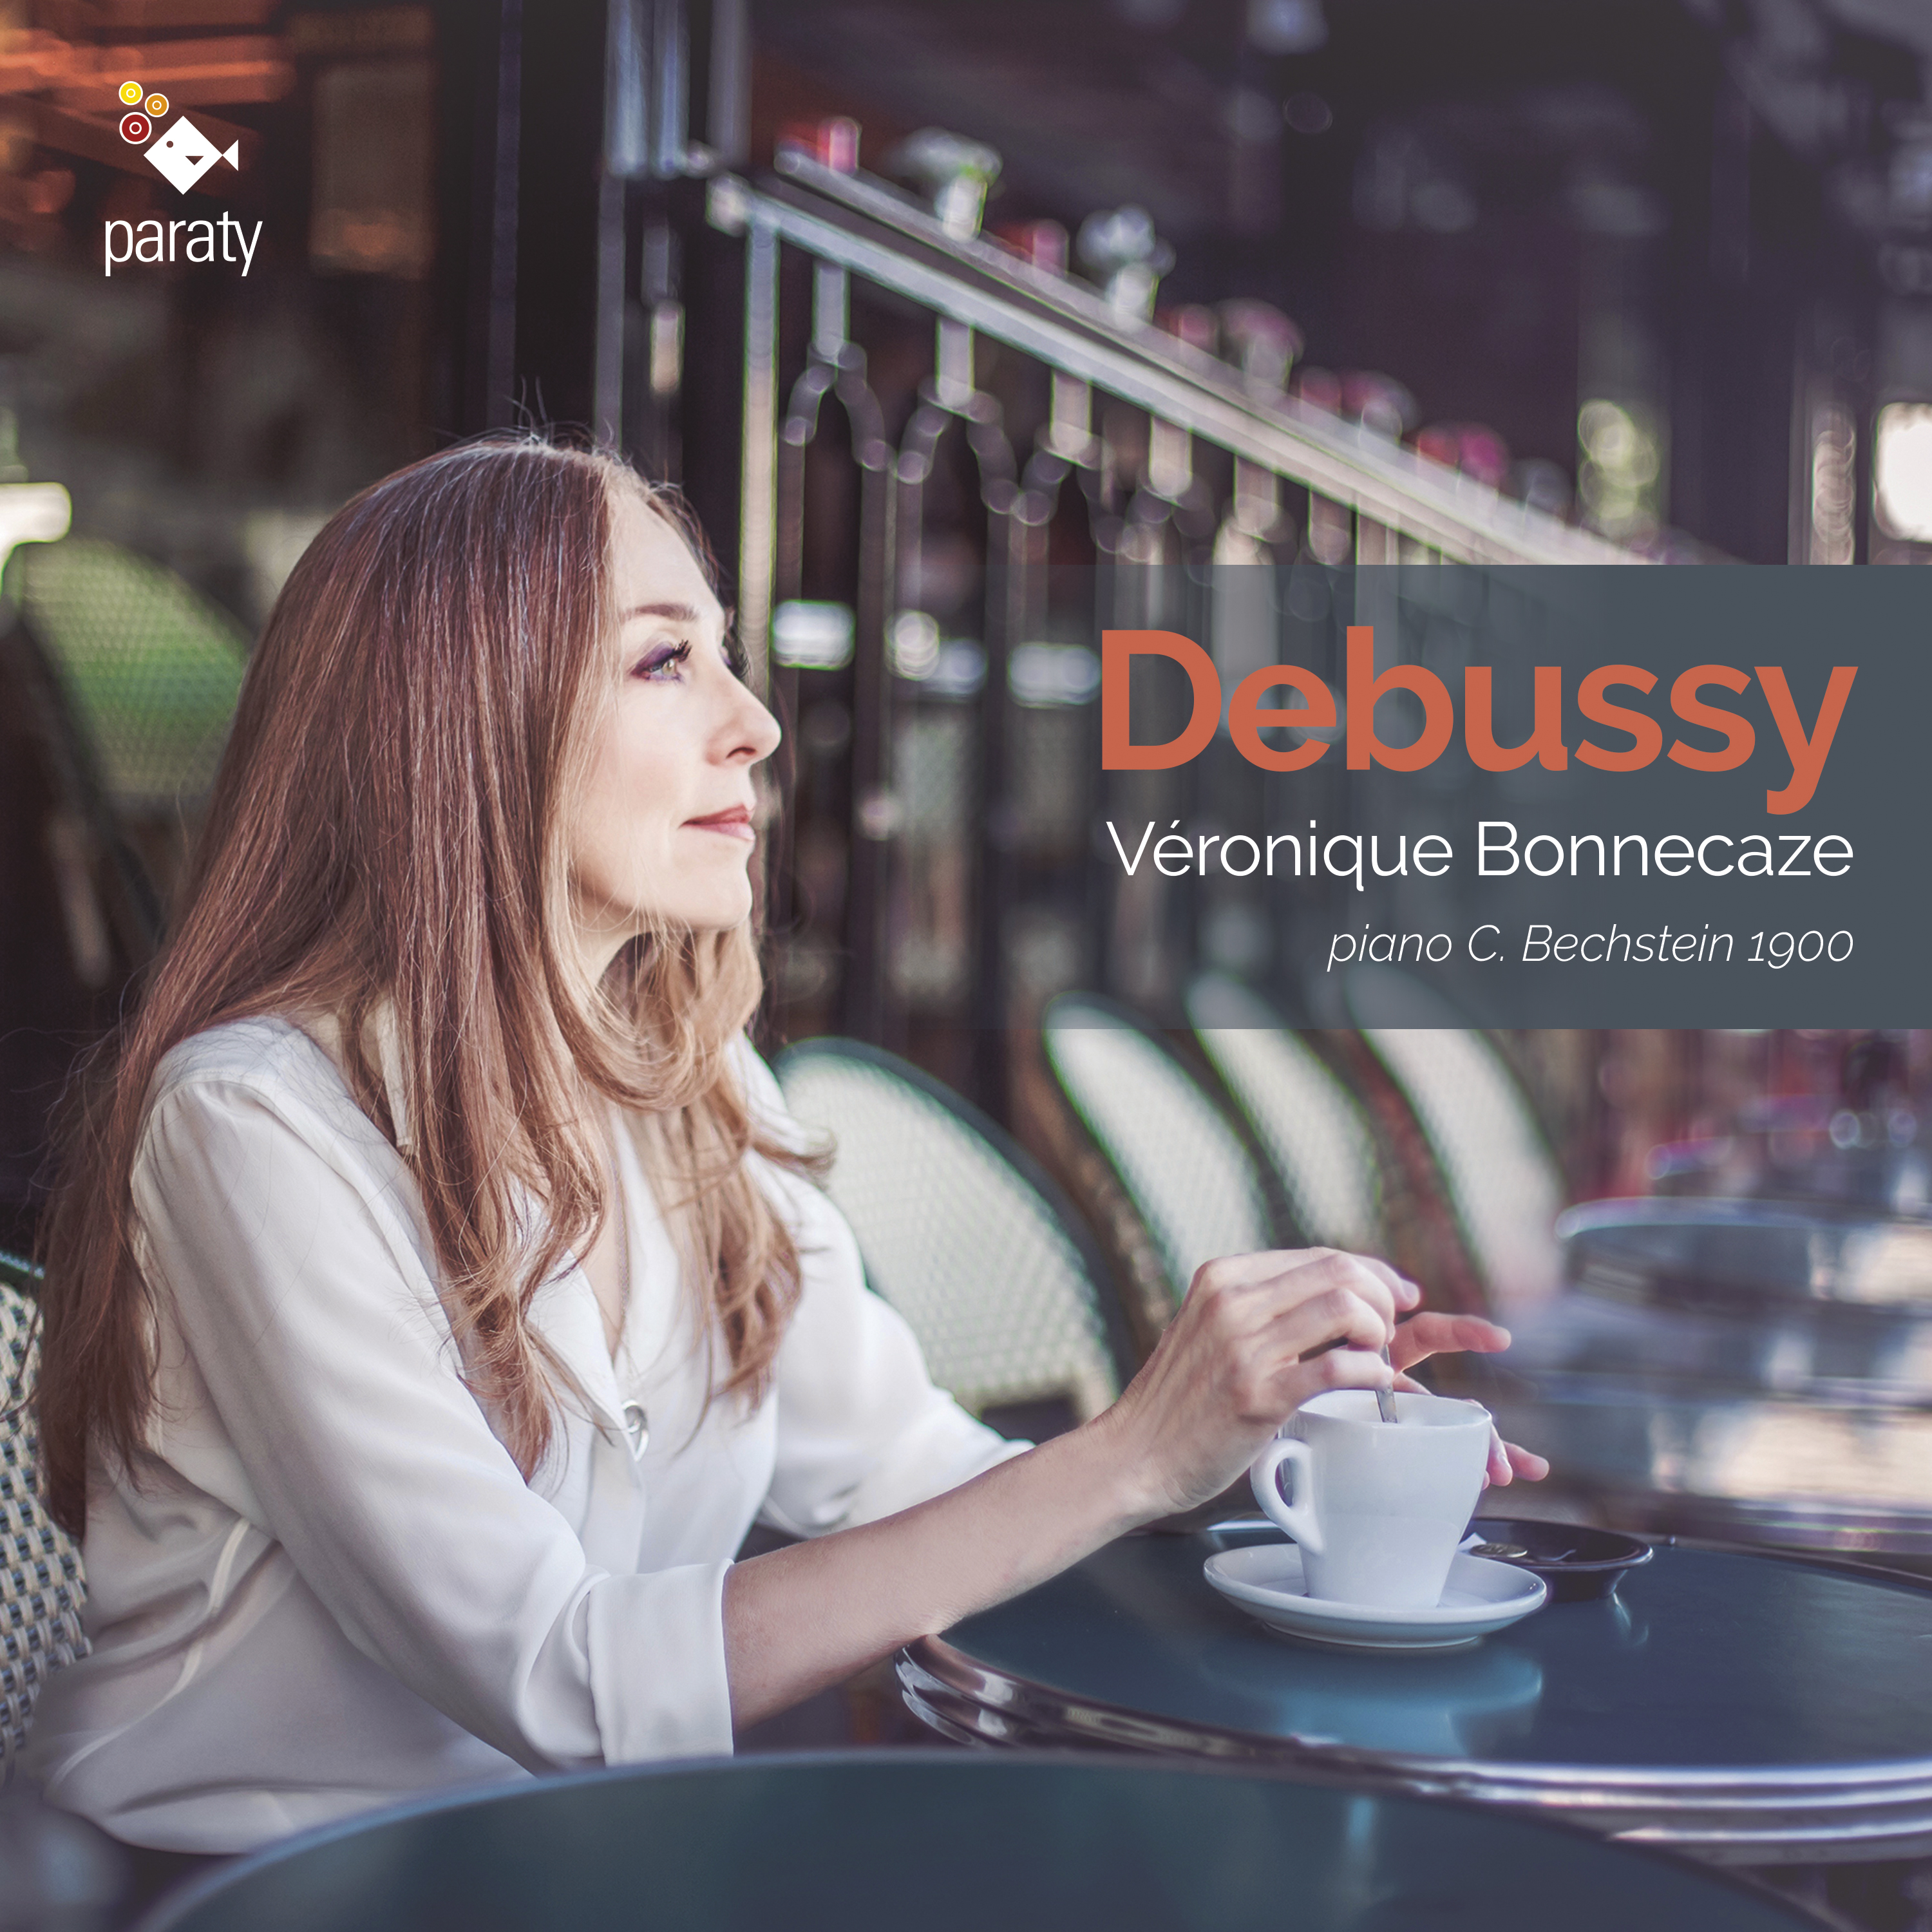 Debussy, Piano C.Bechstein 1900